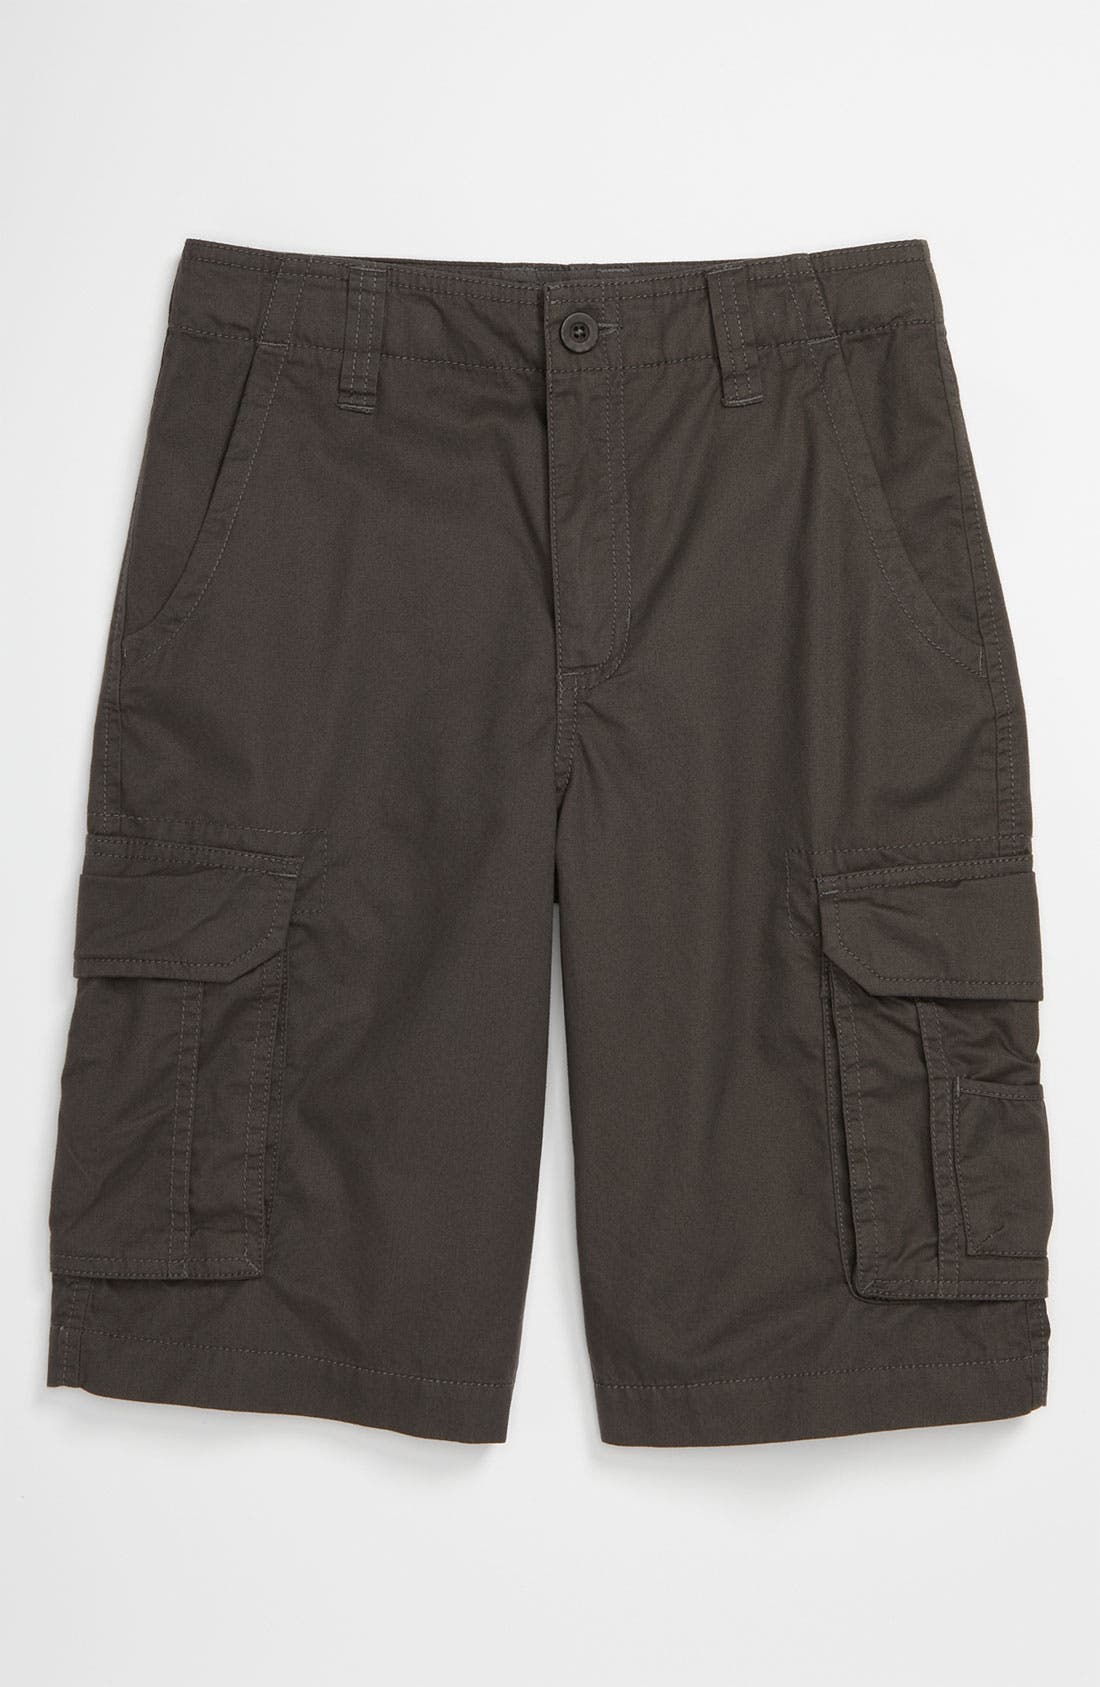 Alternate Image 1 Selected - Pure Stuff 'Zander' Cargo Shorts (Big Boys)